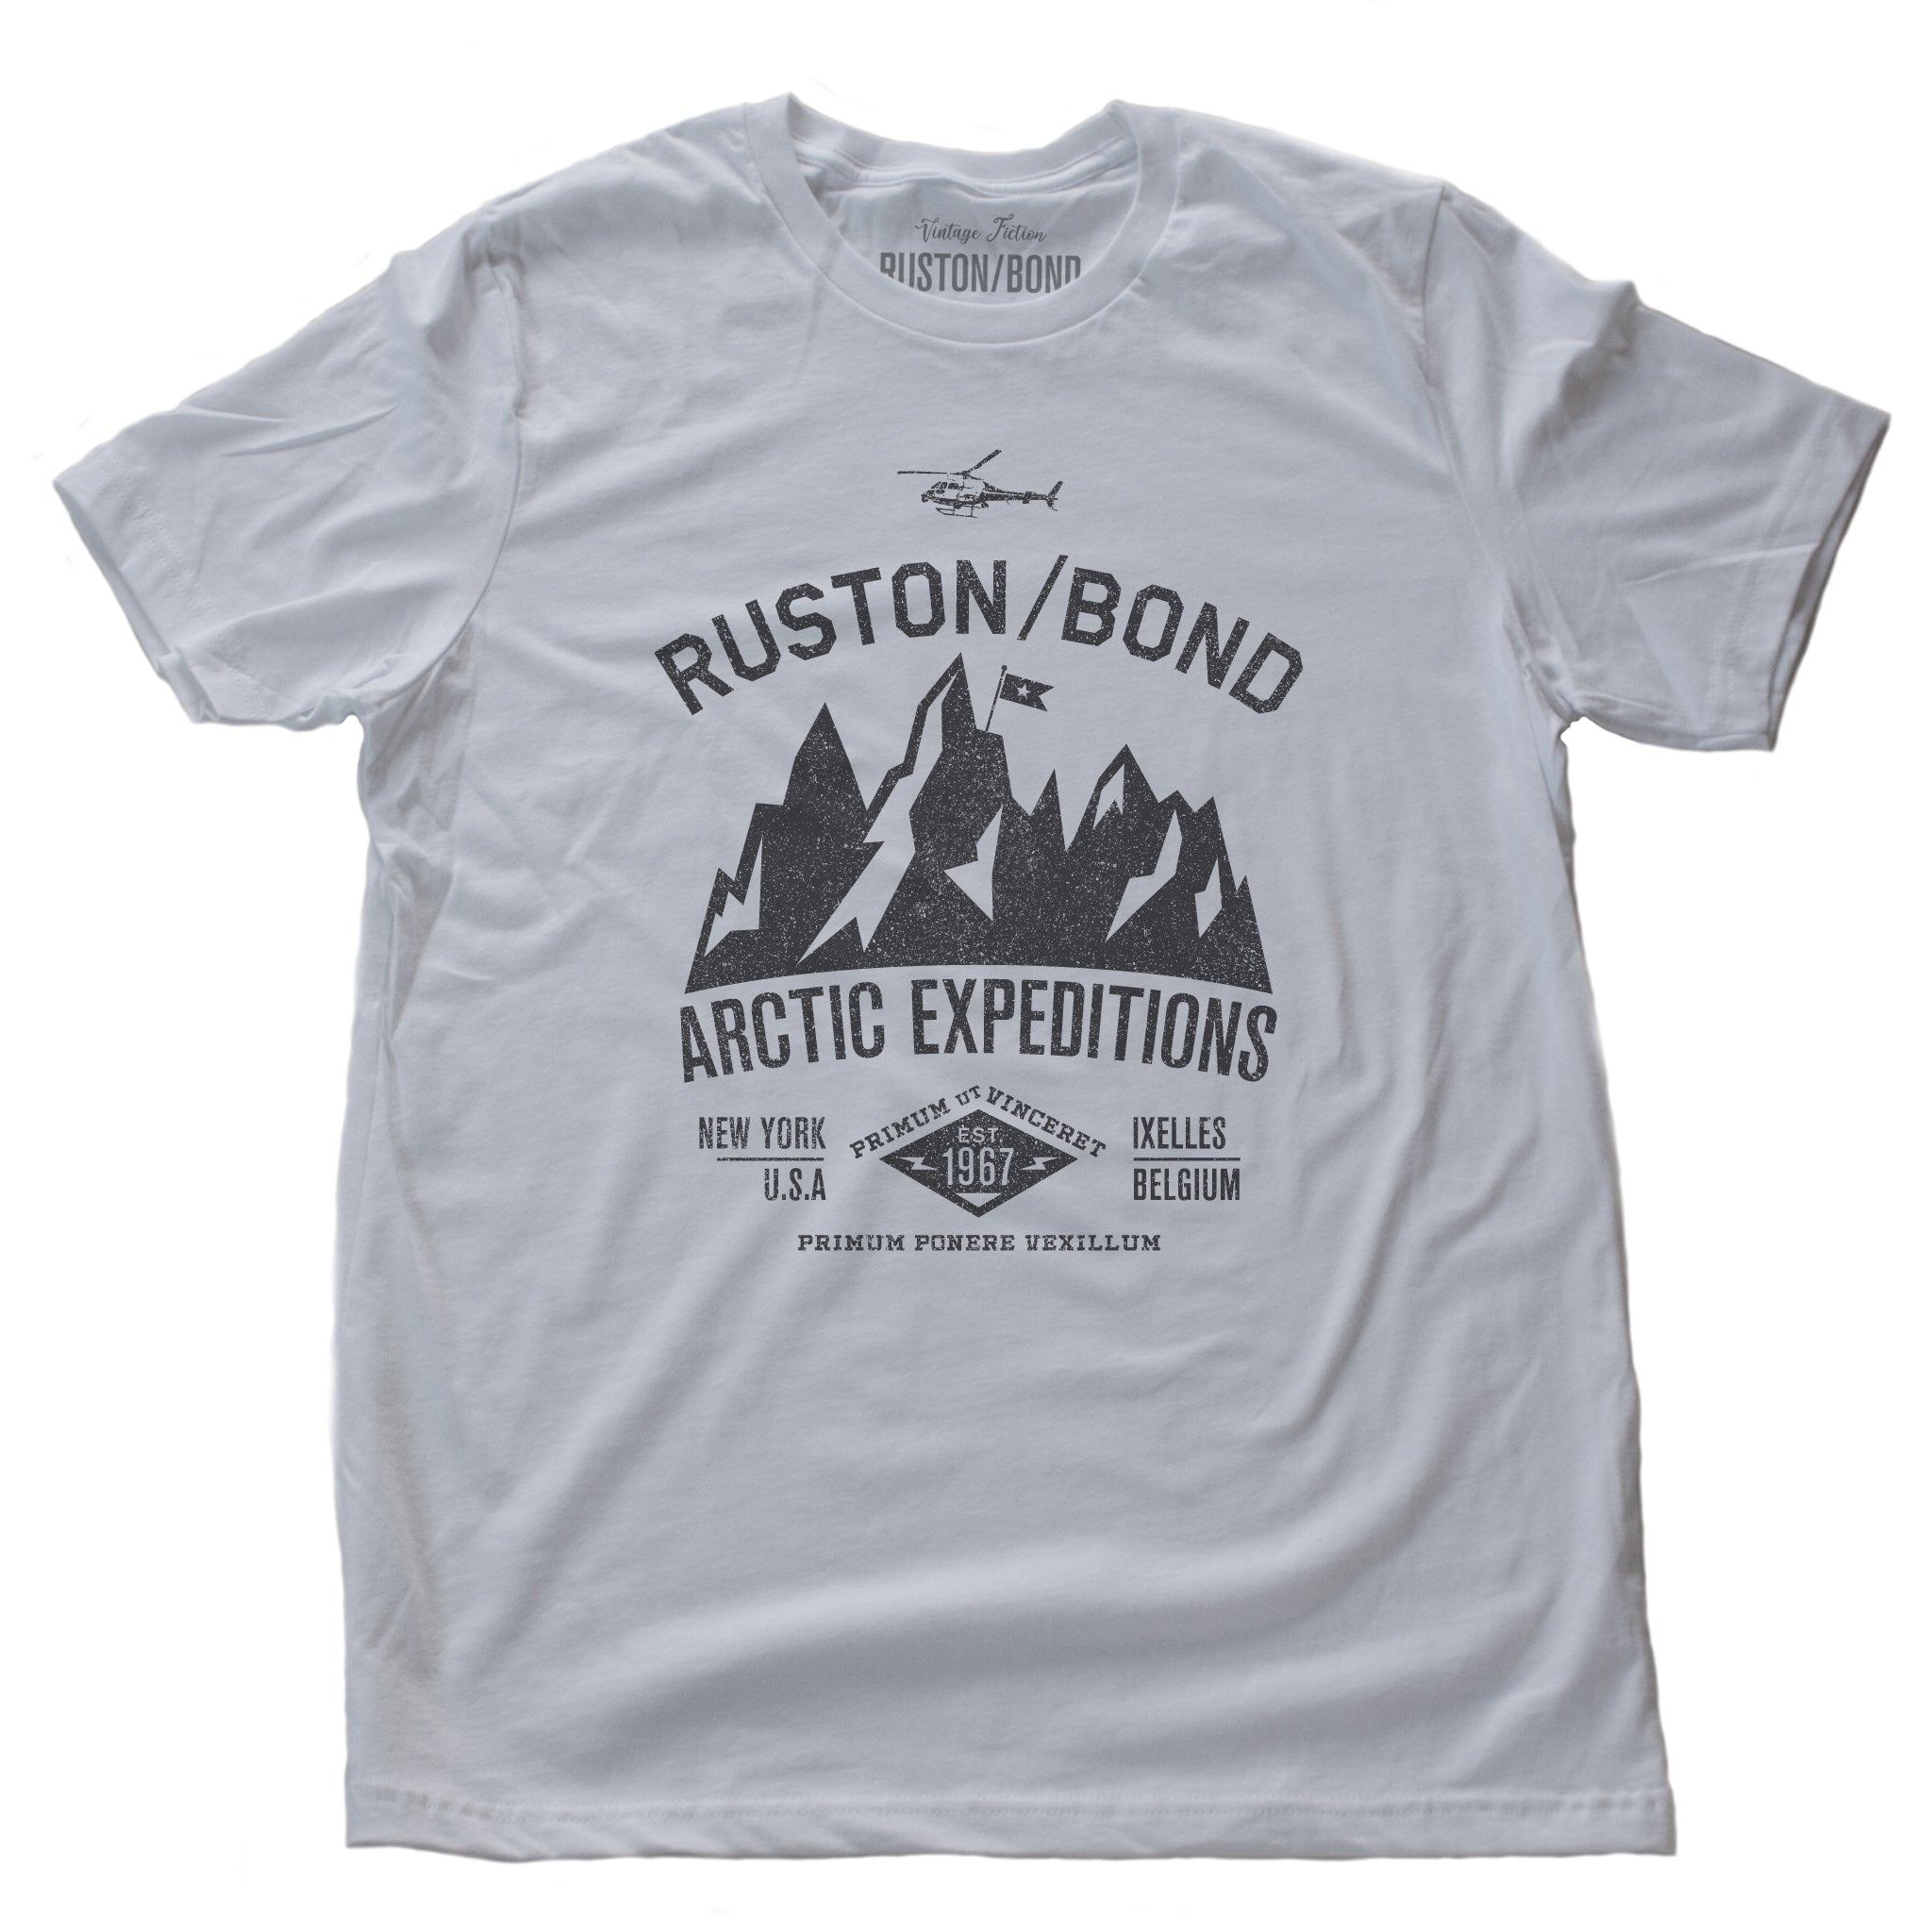 White  classic, fashion, retro inspired t-shirt, with a fictional advertisement for an adventure company called Ruston/Bond Arctic Expeditions. It shows a mountain range and a helicopter, and lists the company locations in New York City and Ixelles, Belgium, and a Latin quote.